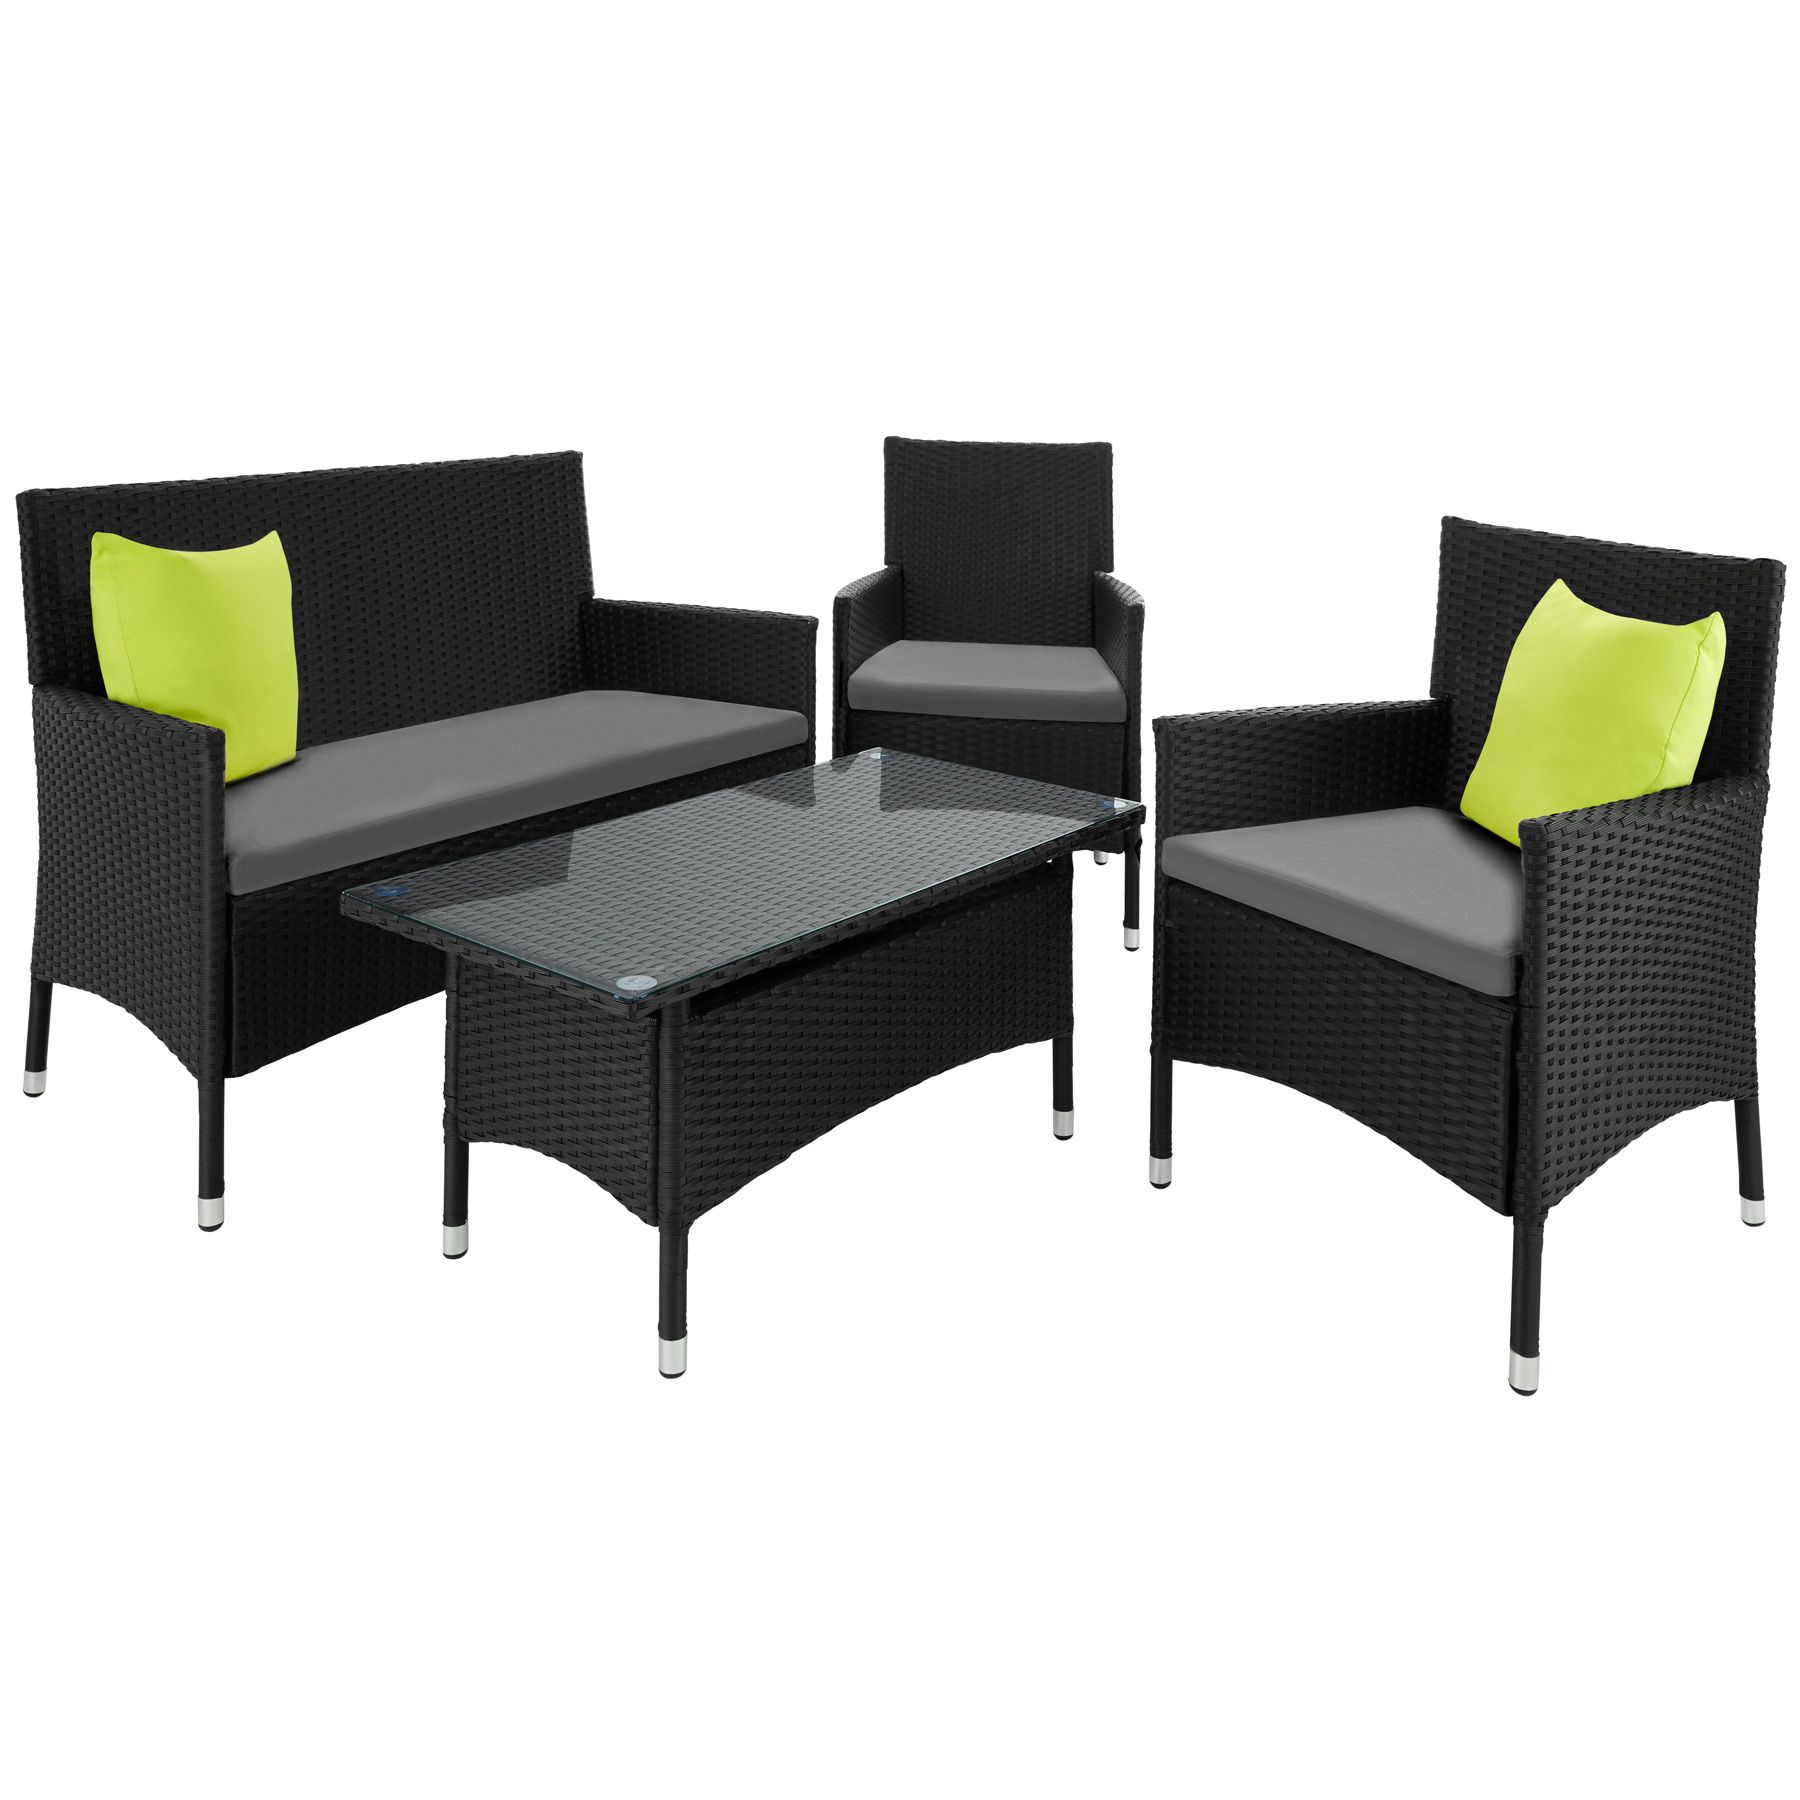 Alu Ensemble Salon De Jardin R Sine Tress E Poly Rotin Canap  # Table De Jardin Resine Noir